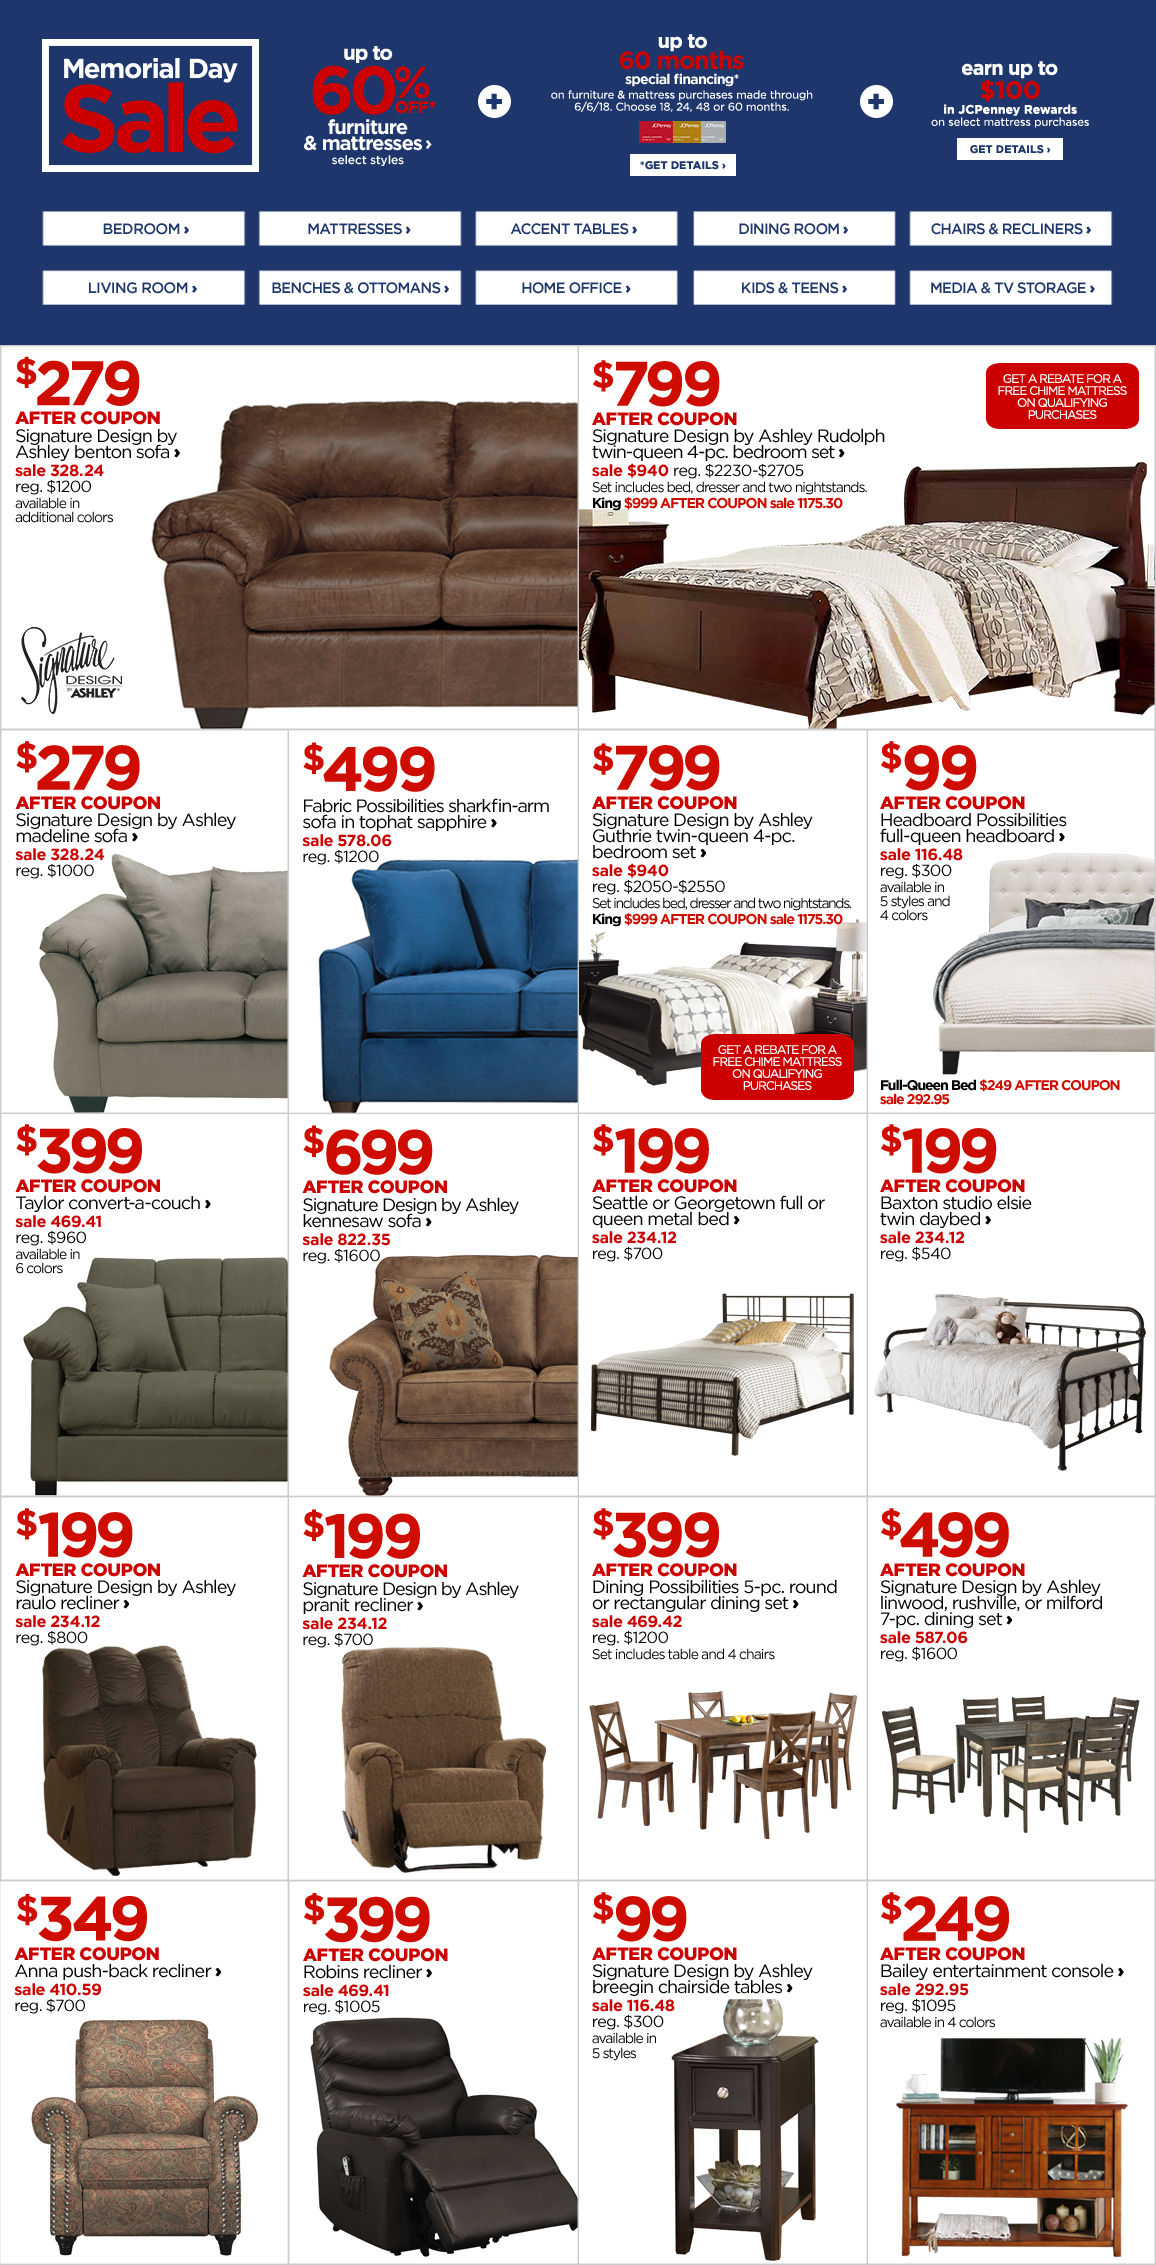 Furniture Store Near Me, Shop Bedroom, Living & Dining Room Sets at ...